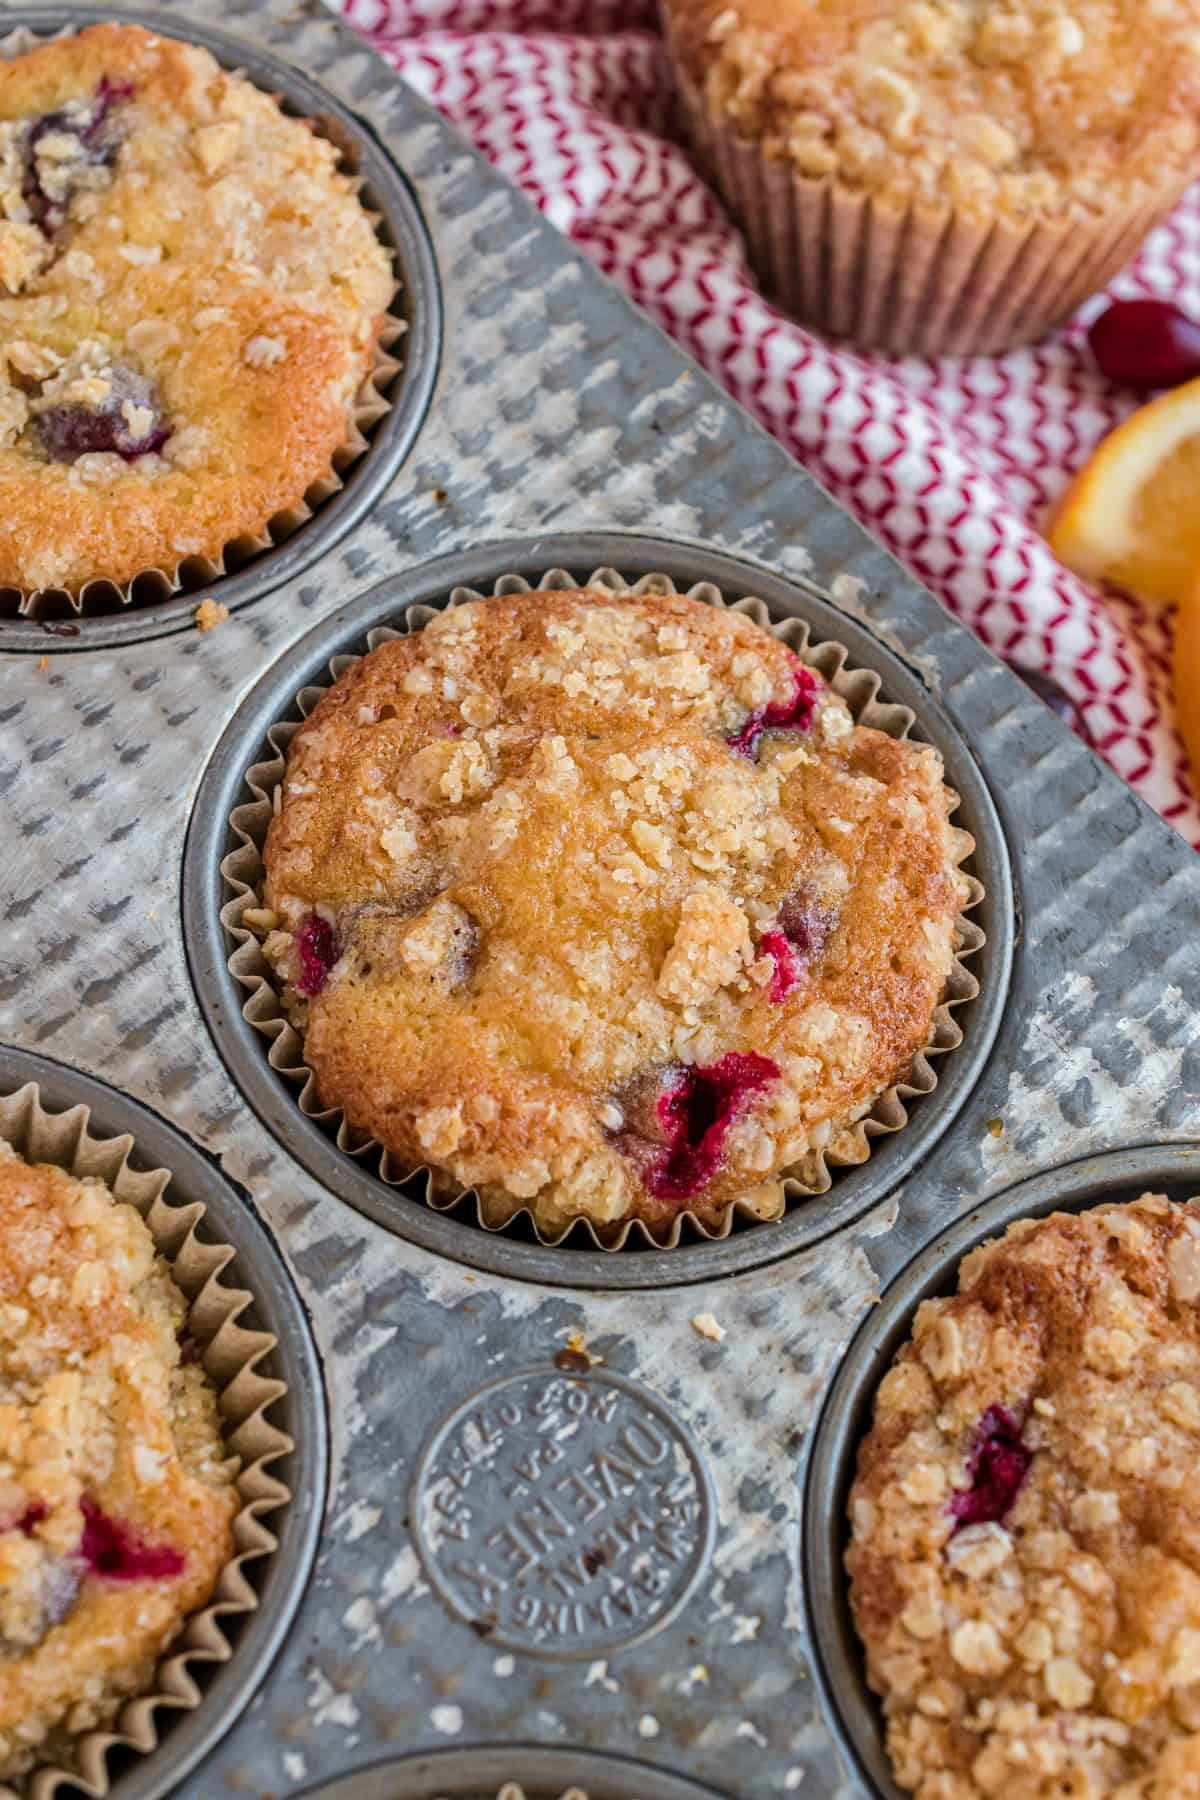 Cranberry orange muffins in a muffin pan with streusel.